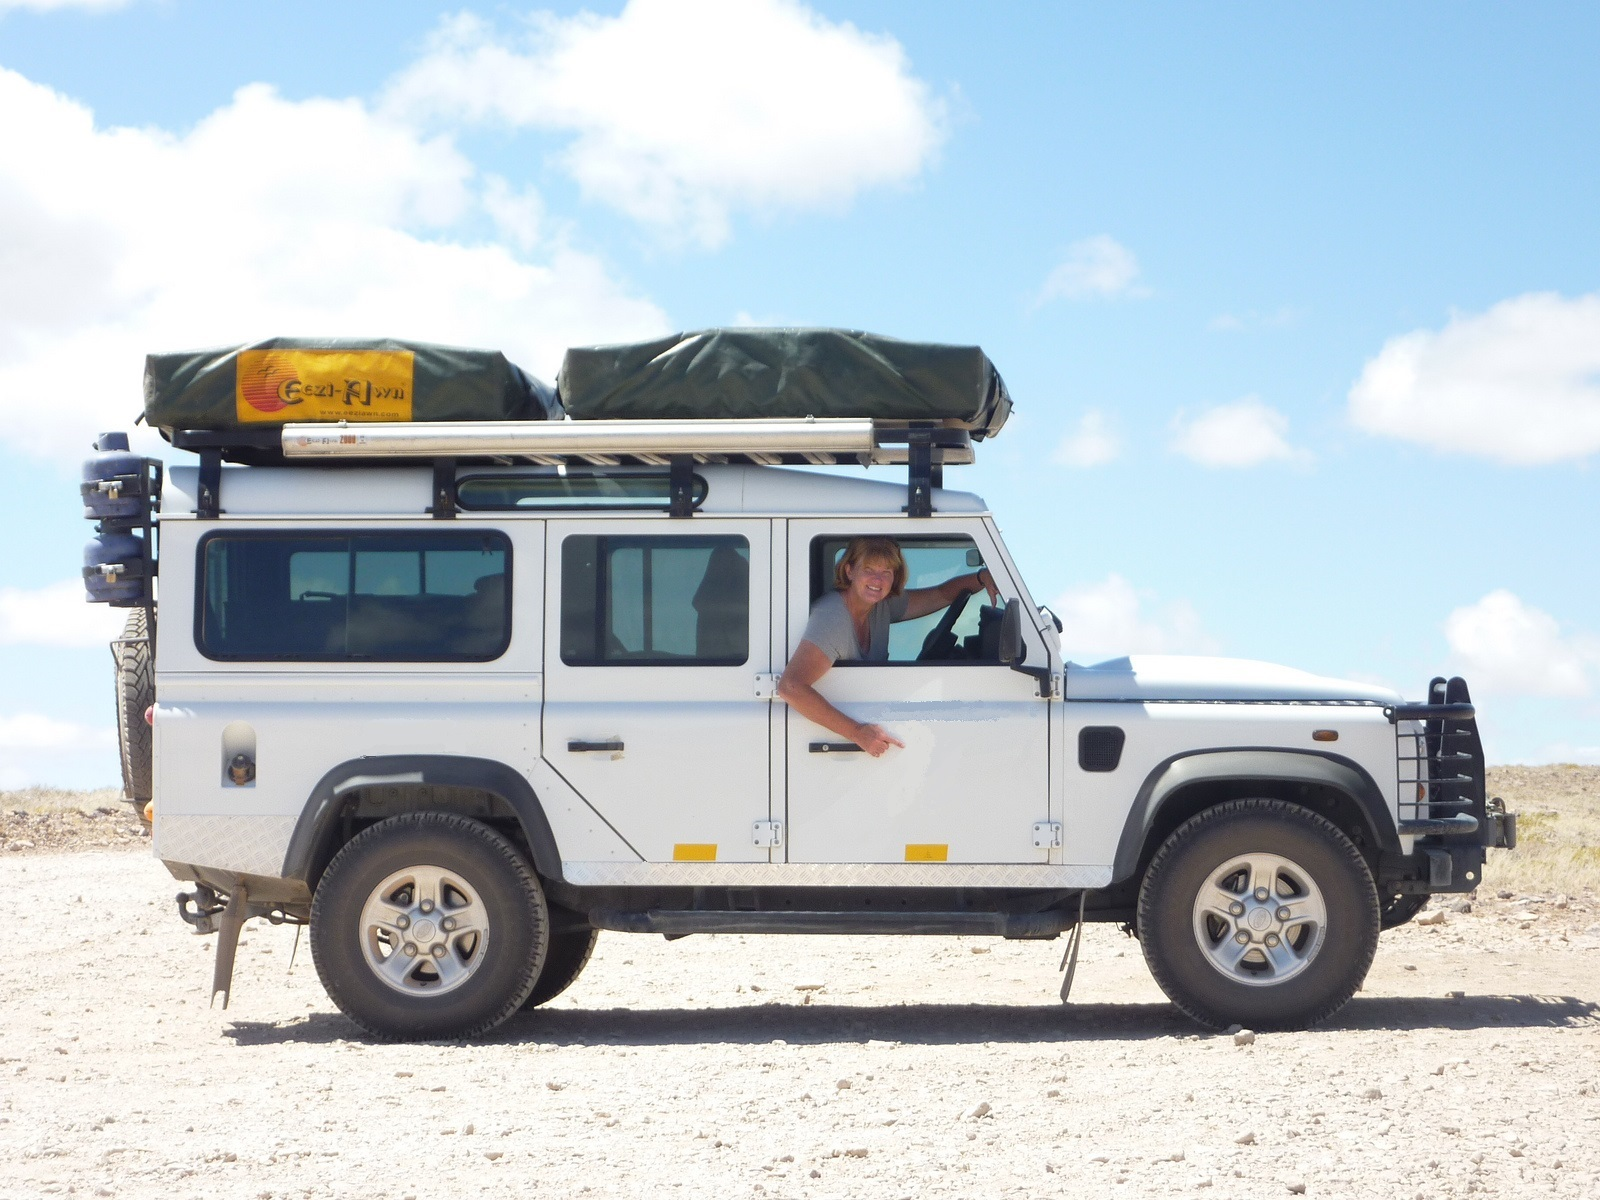 1000 images about landrover on pinterest surf campers for Garage land rover nancy